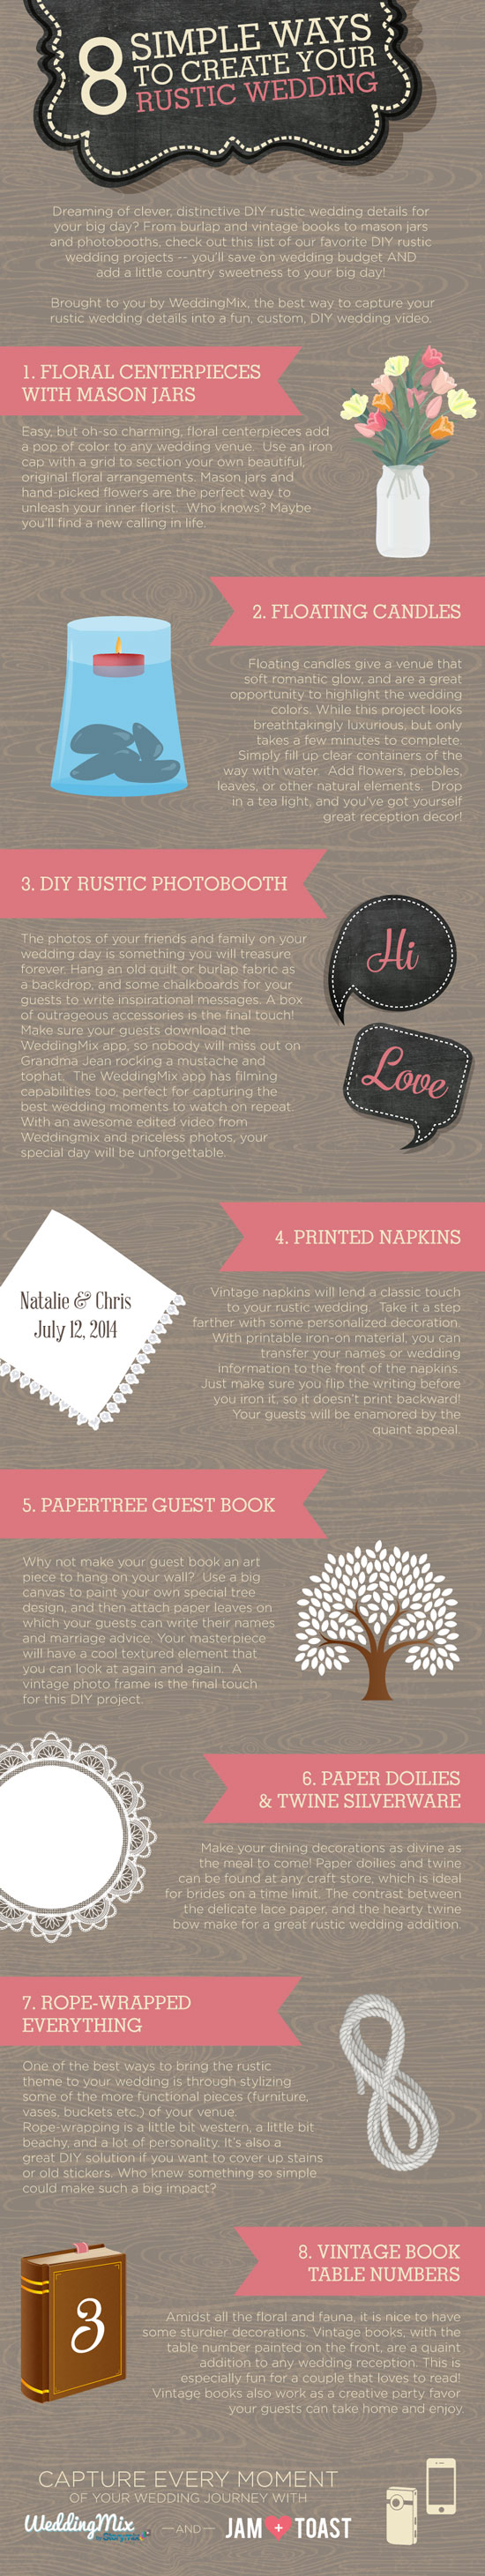 2014-07-02-20140630rusticweddinginfographic550.jpg